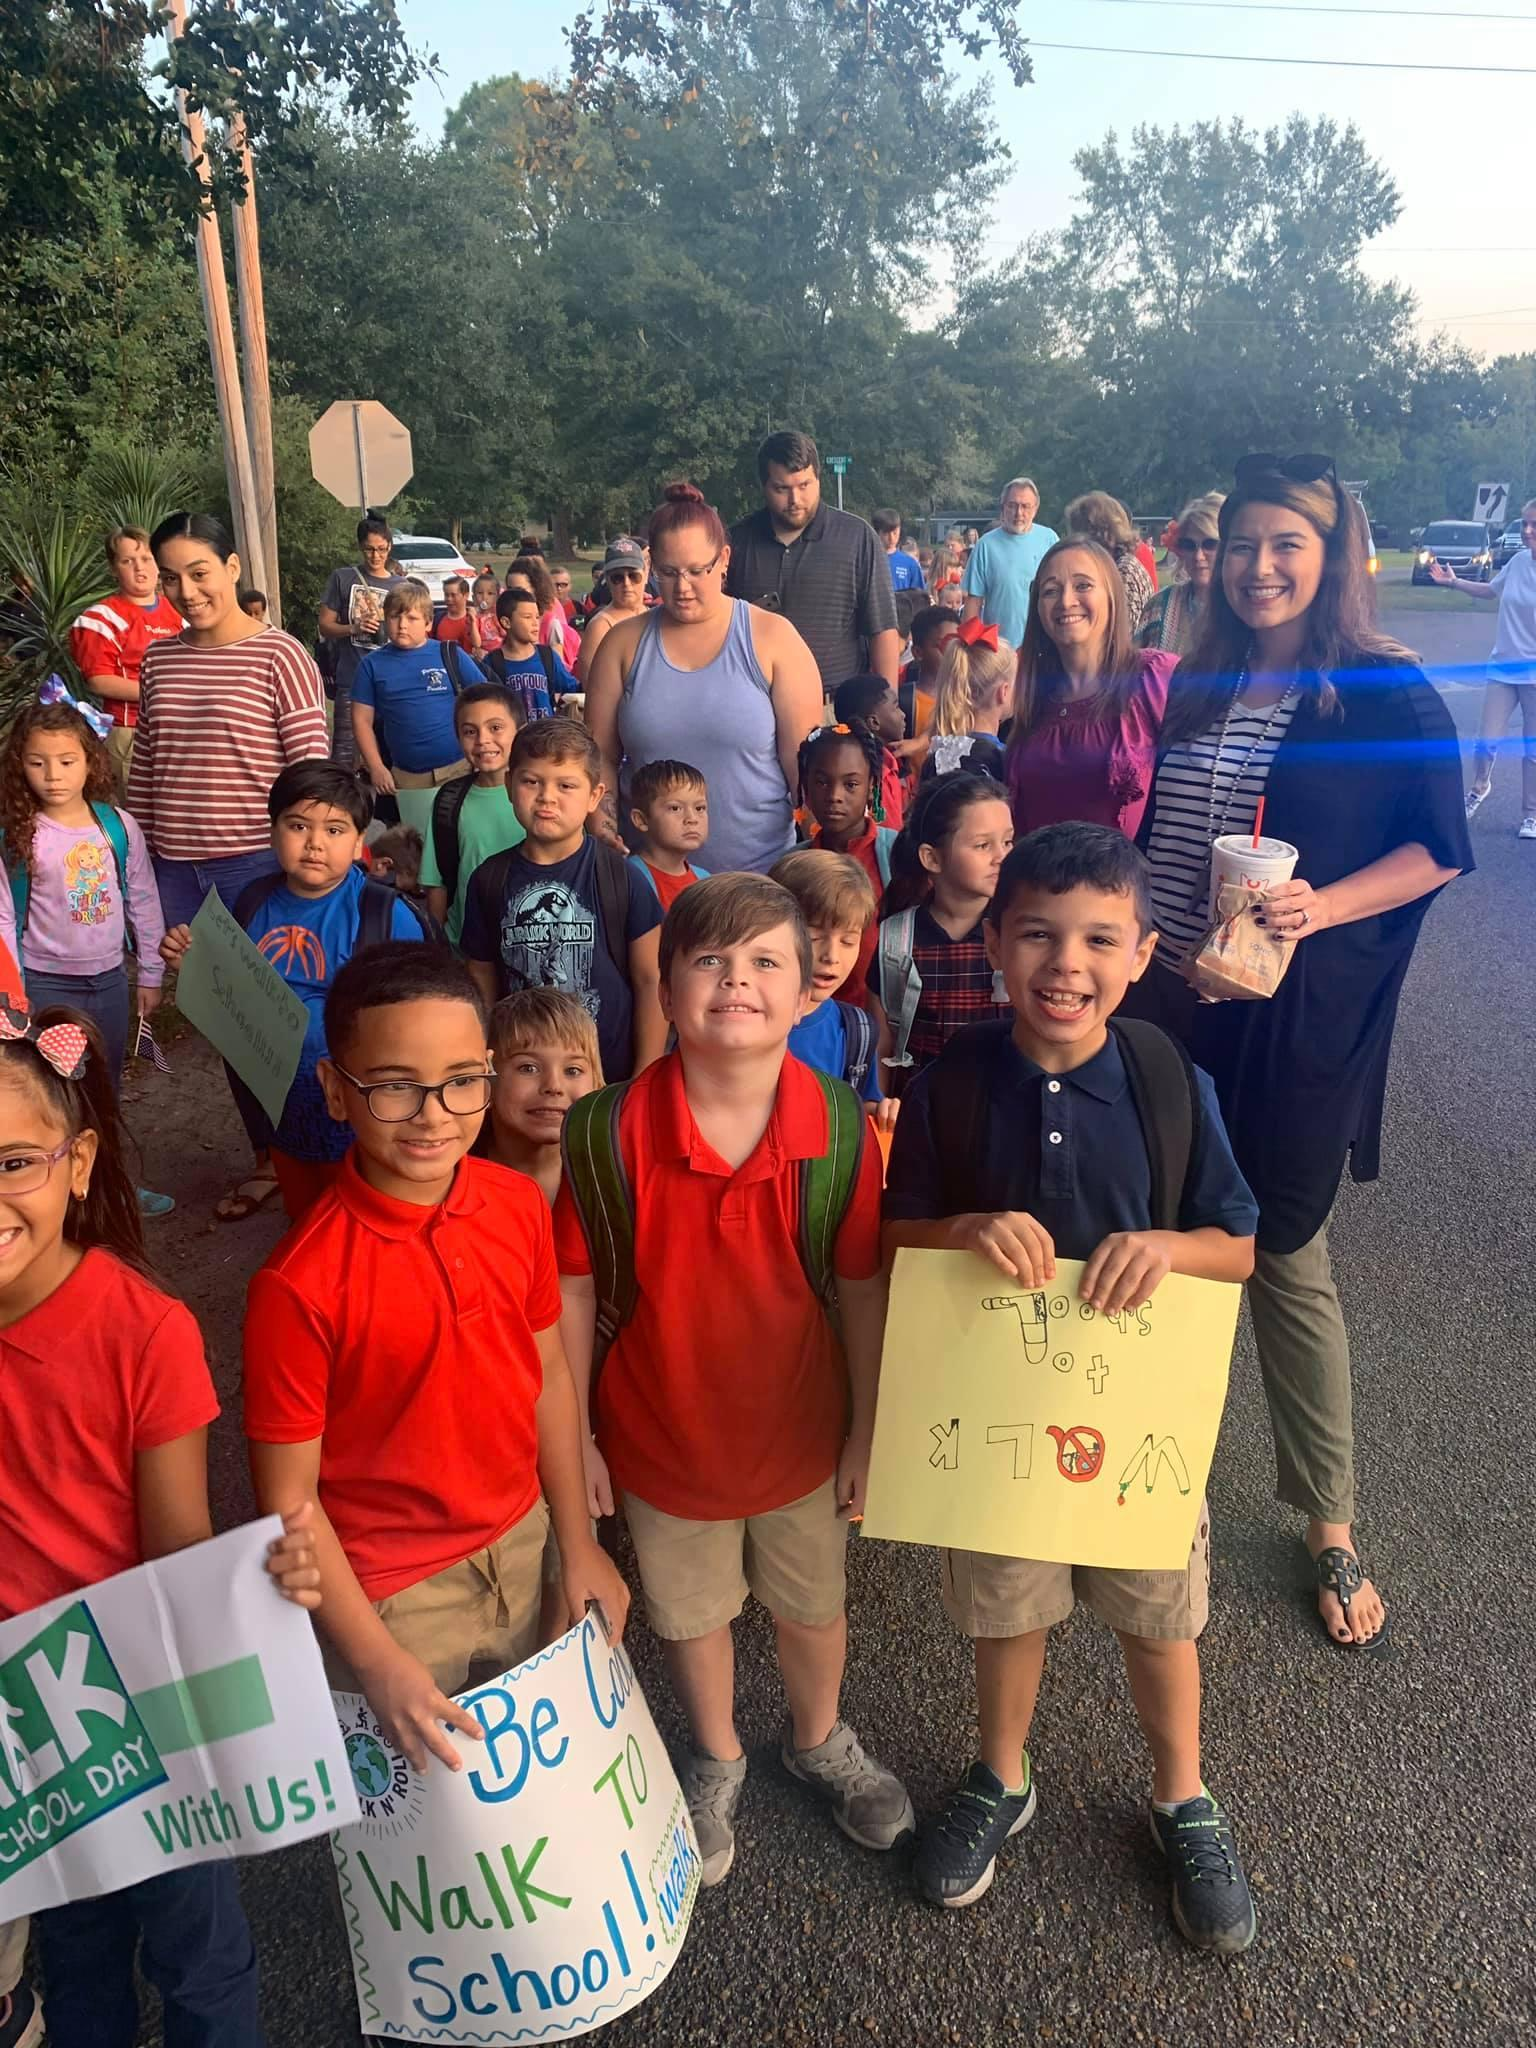 students ready to walk to school